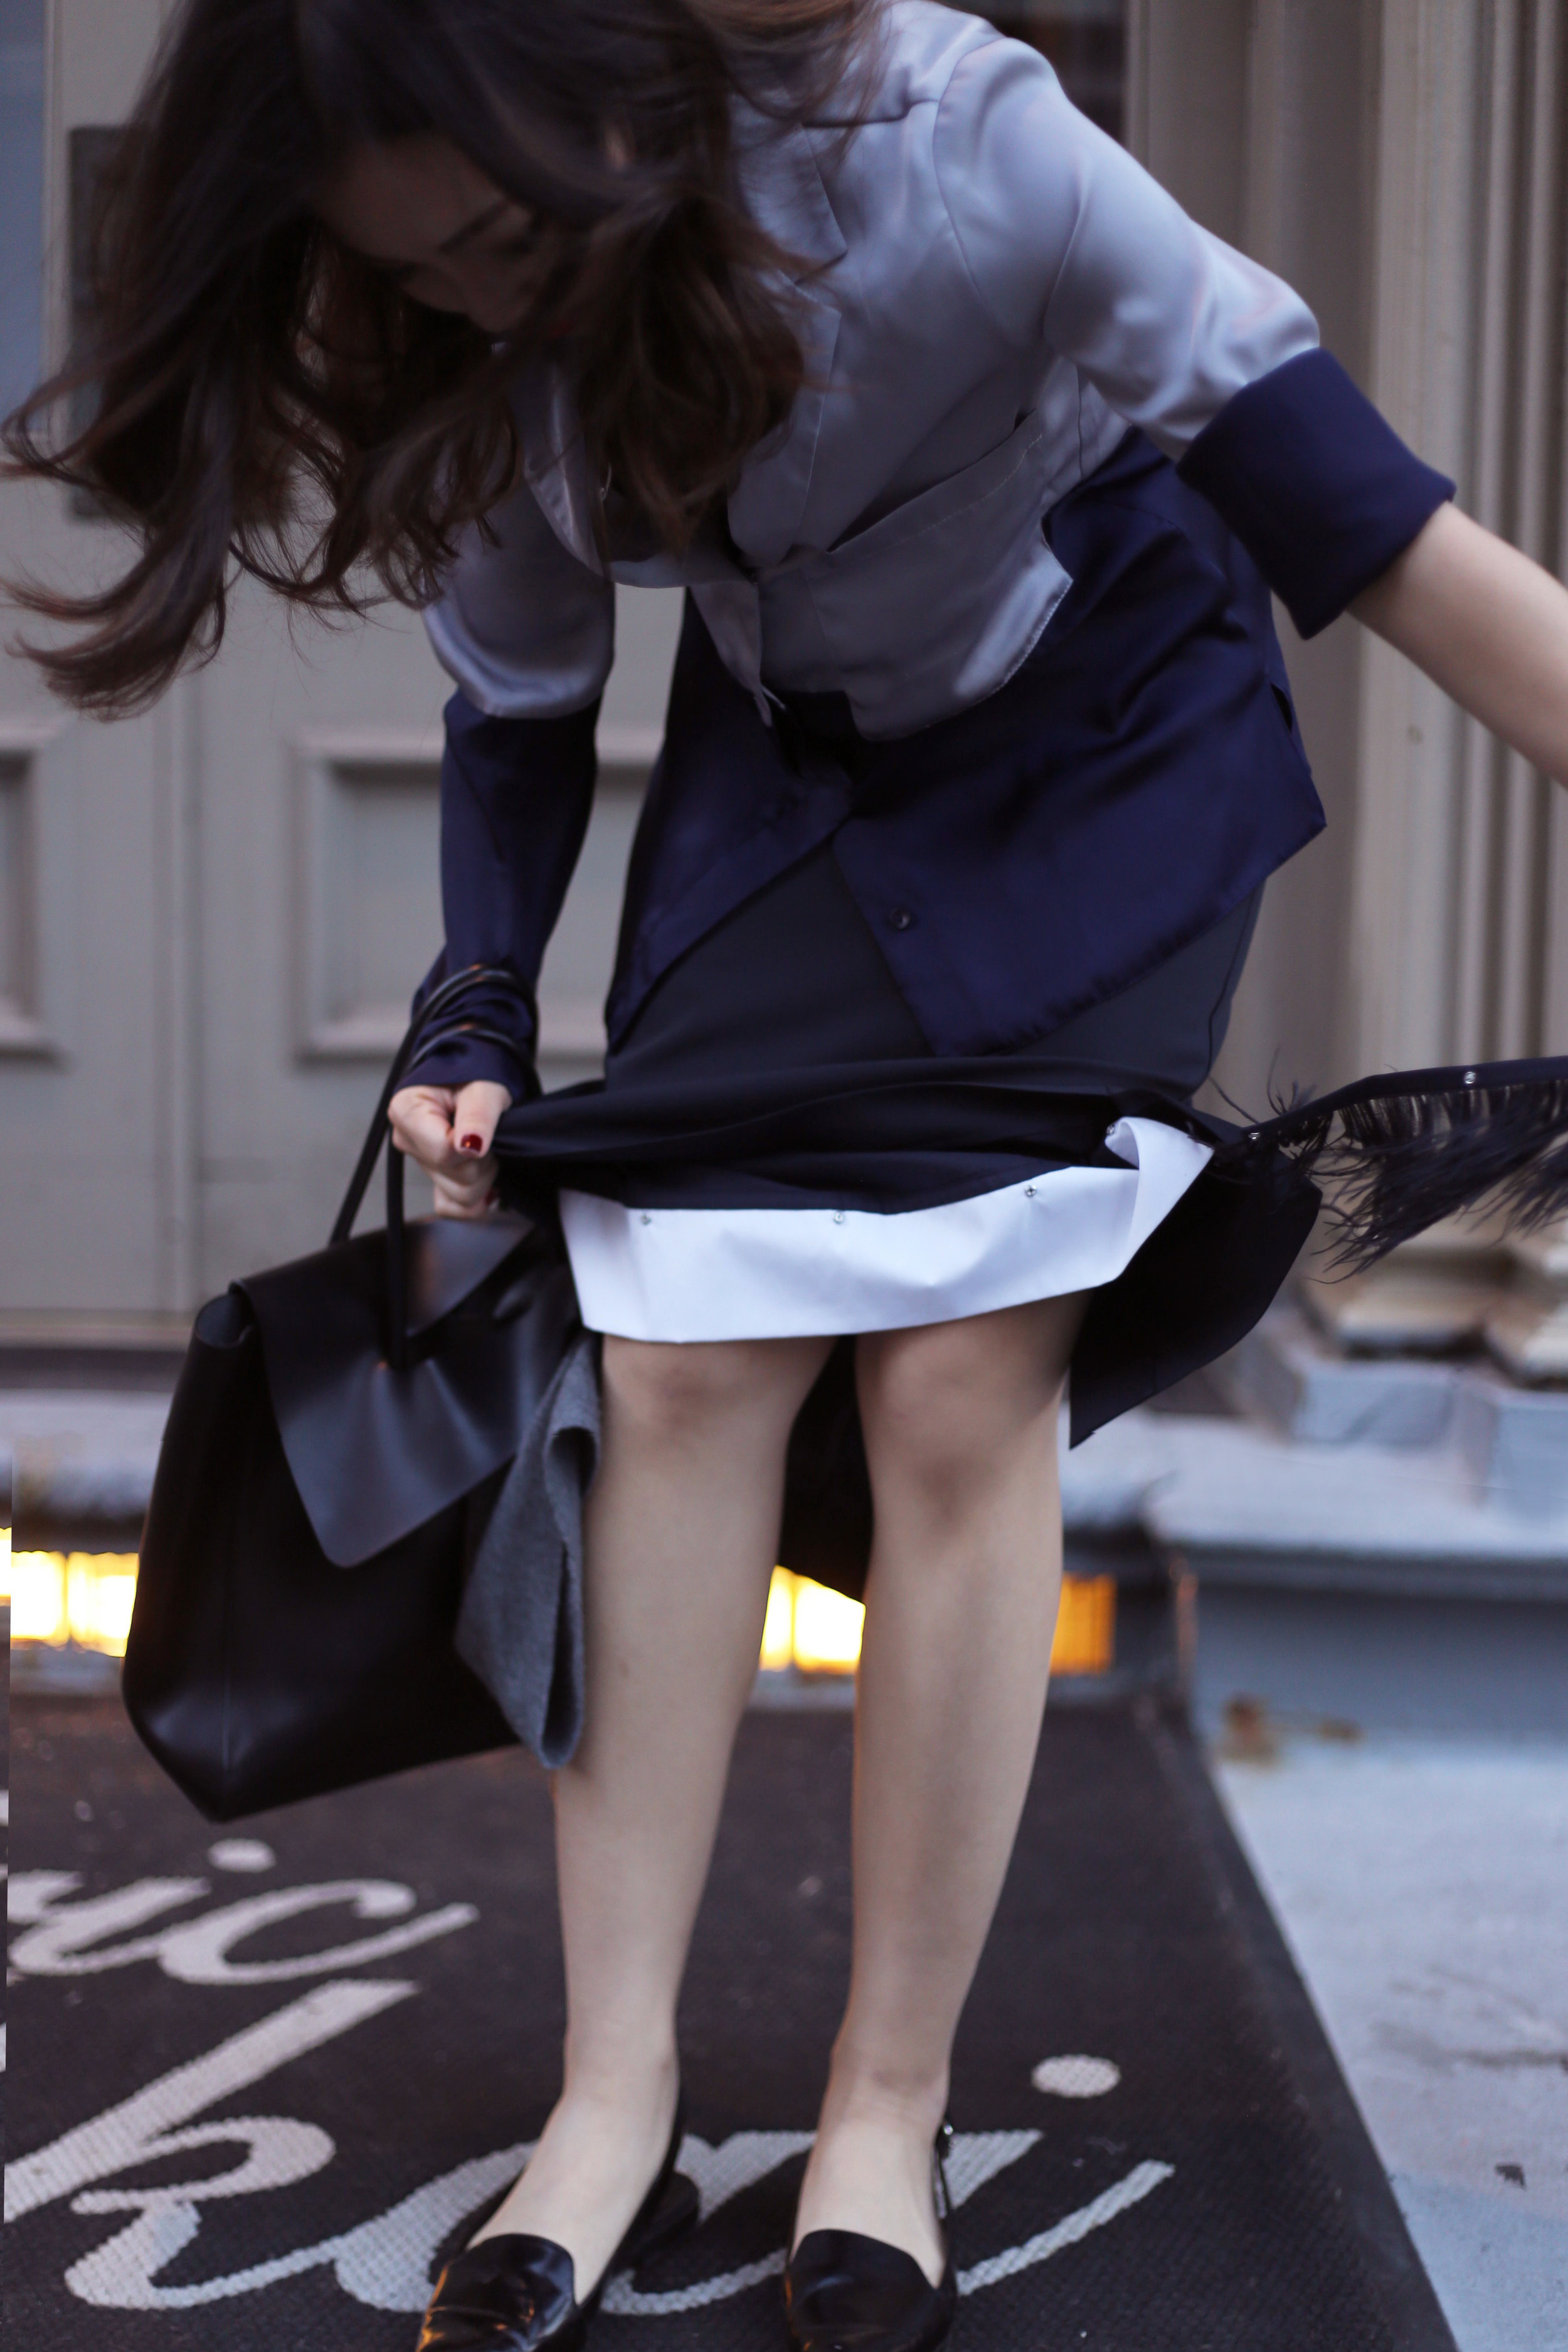 pencil skirt outfit.jpg